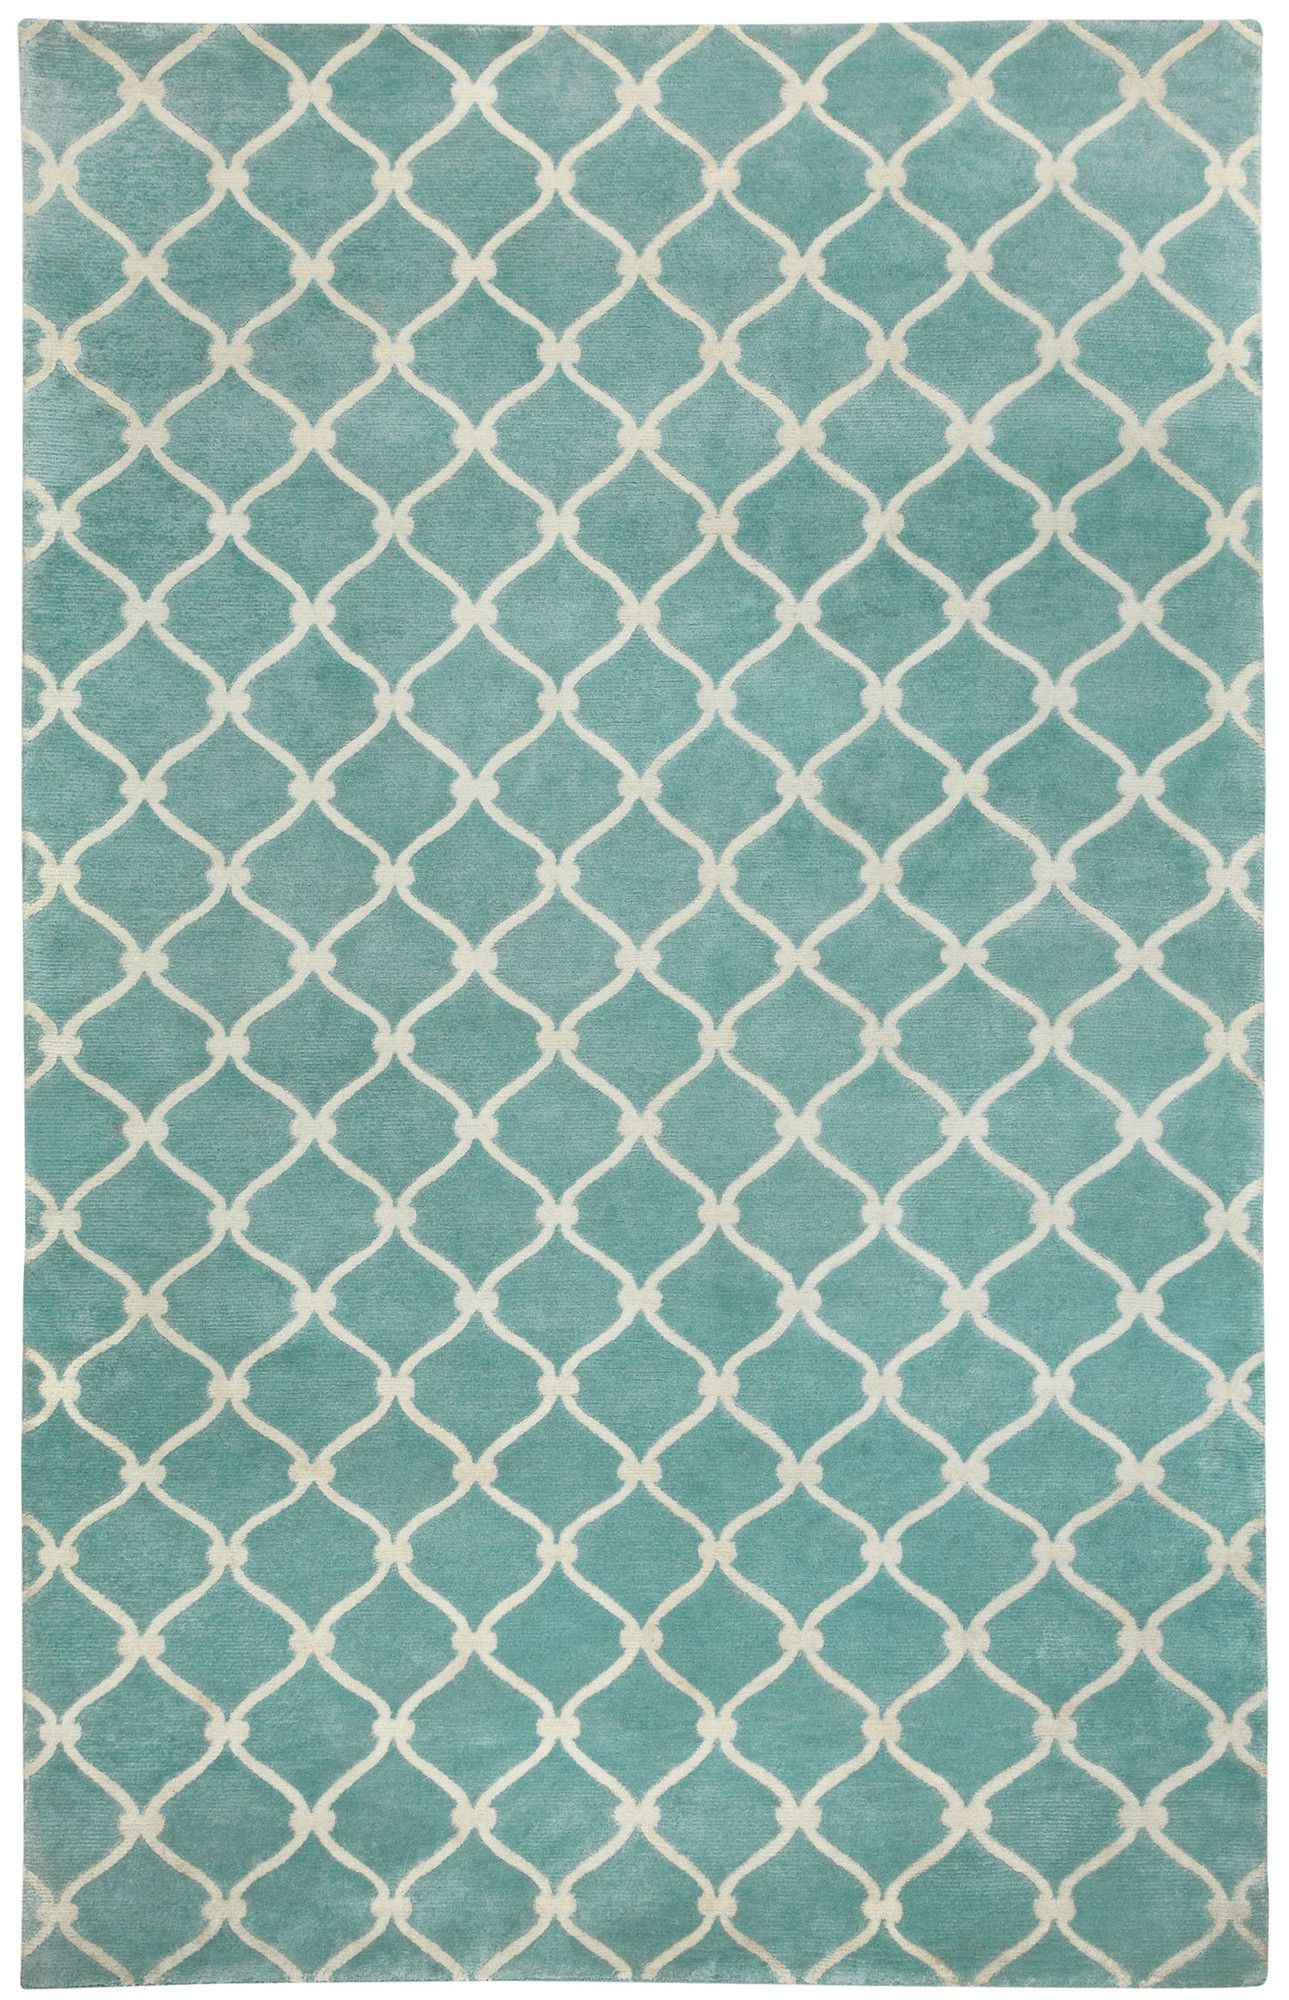 Reflections Light Beige Area Rug Cream Rugs And Blue Cream Inside Light Blue And Cream Rugs (Image 10 of 15)